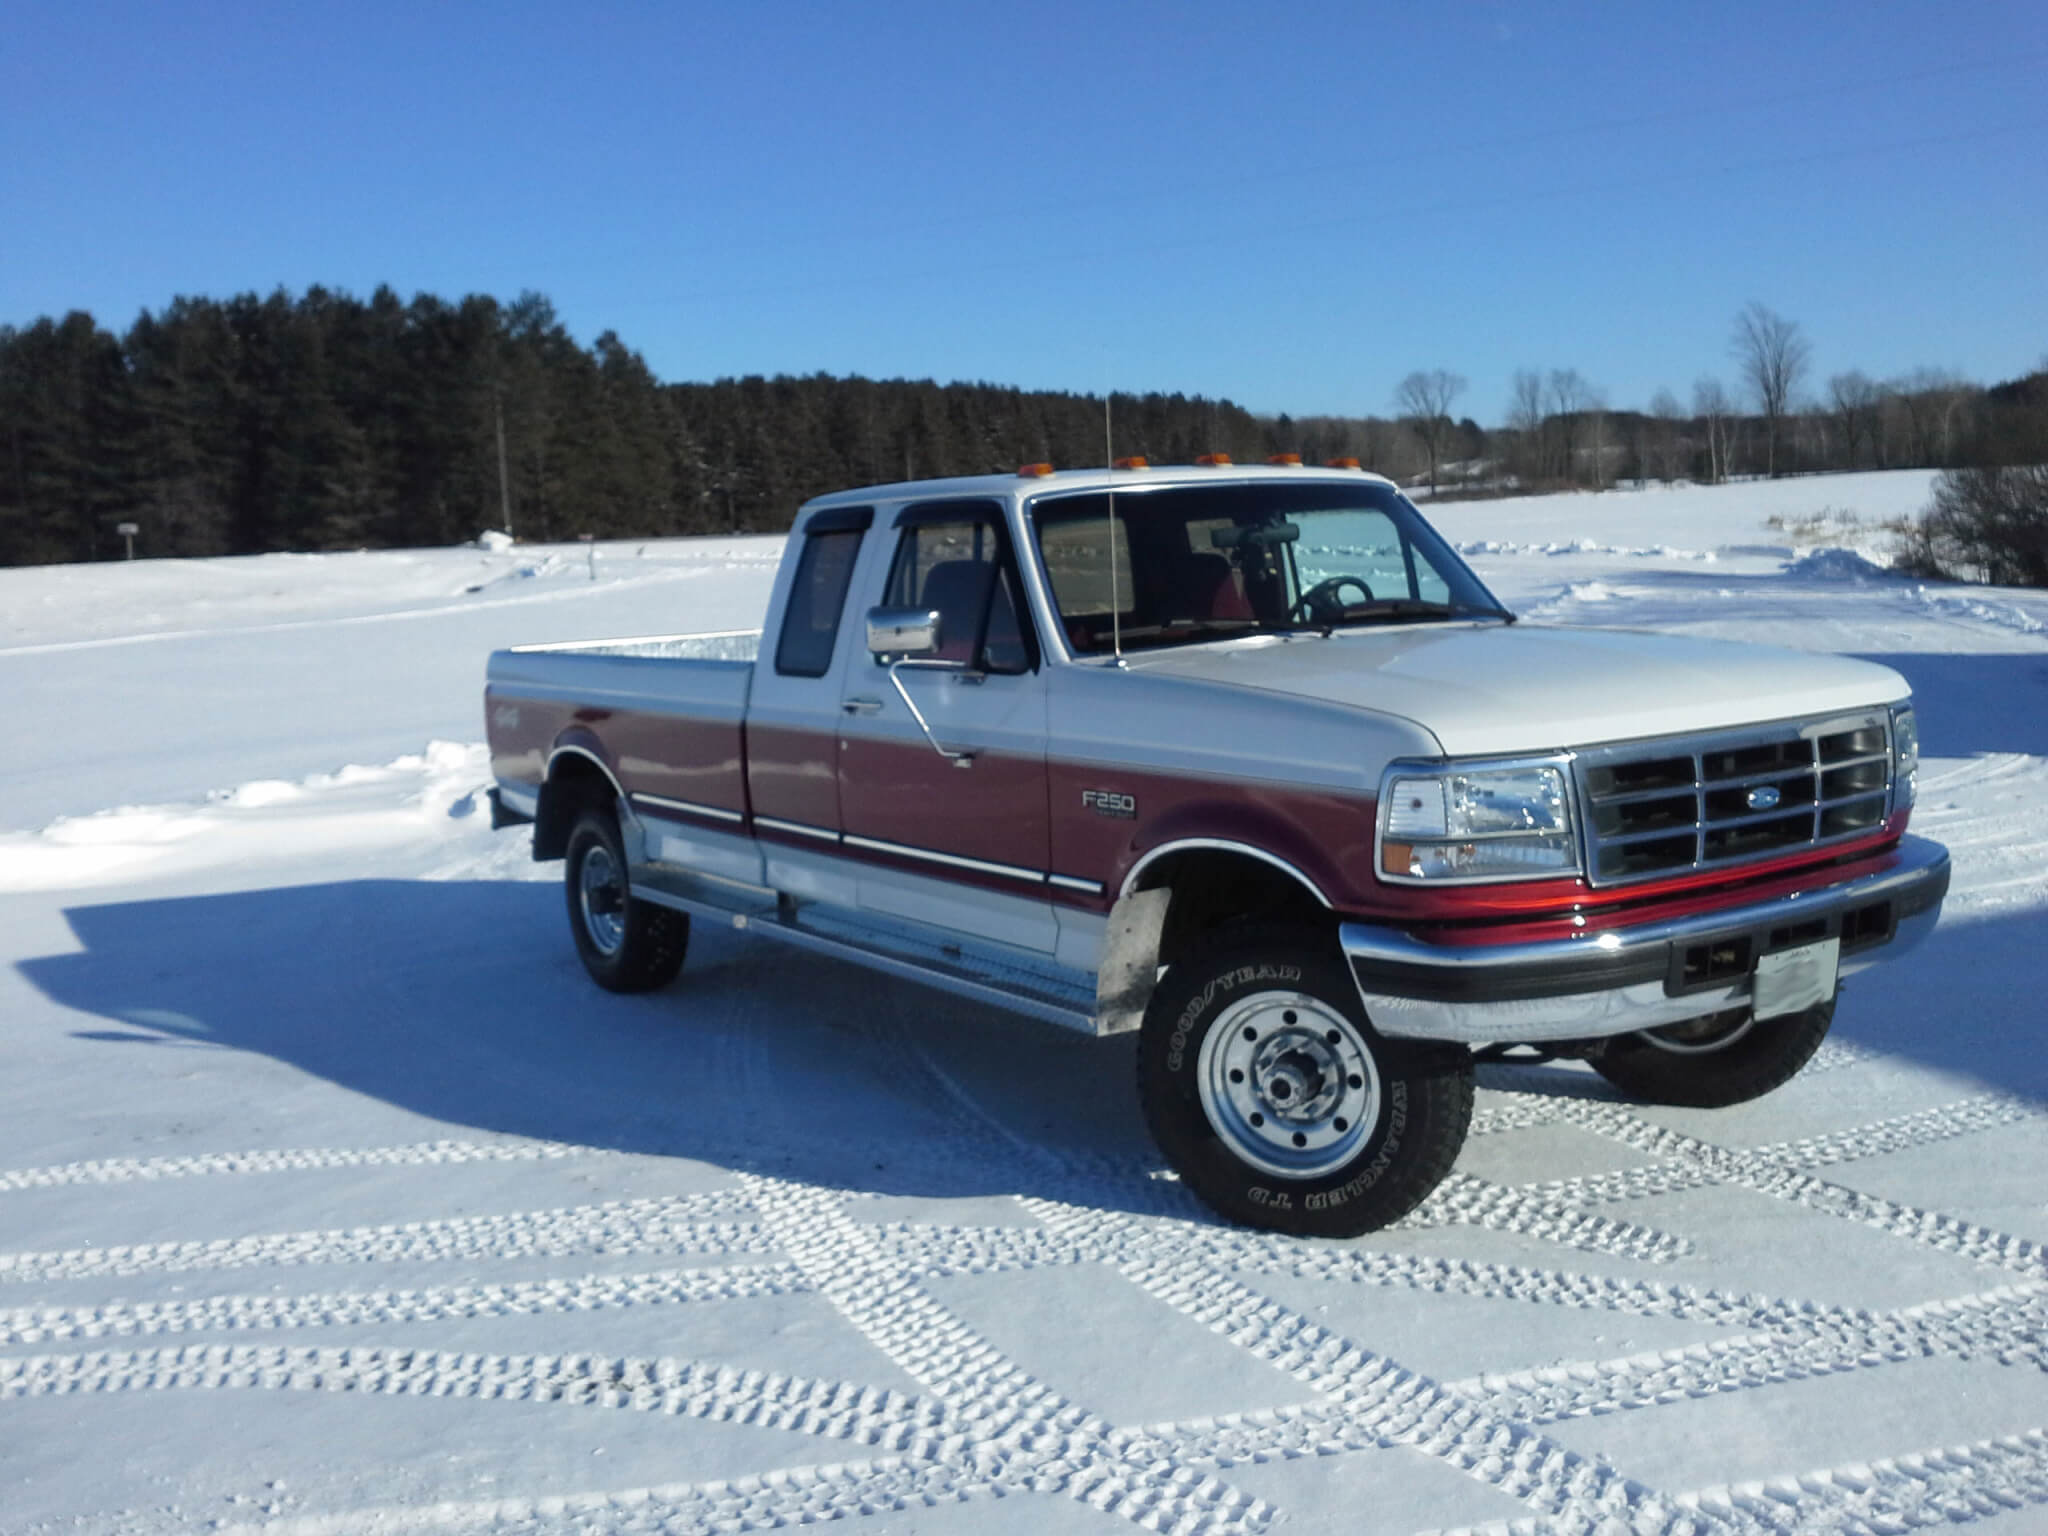 1997 Ford F250-Kevin S. - LMC Truck Life